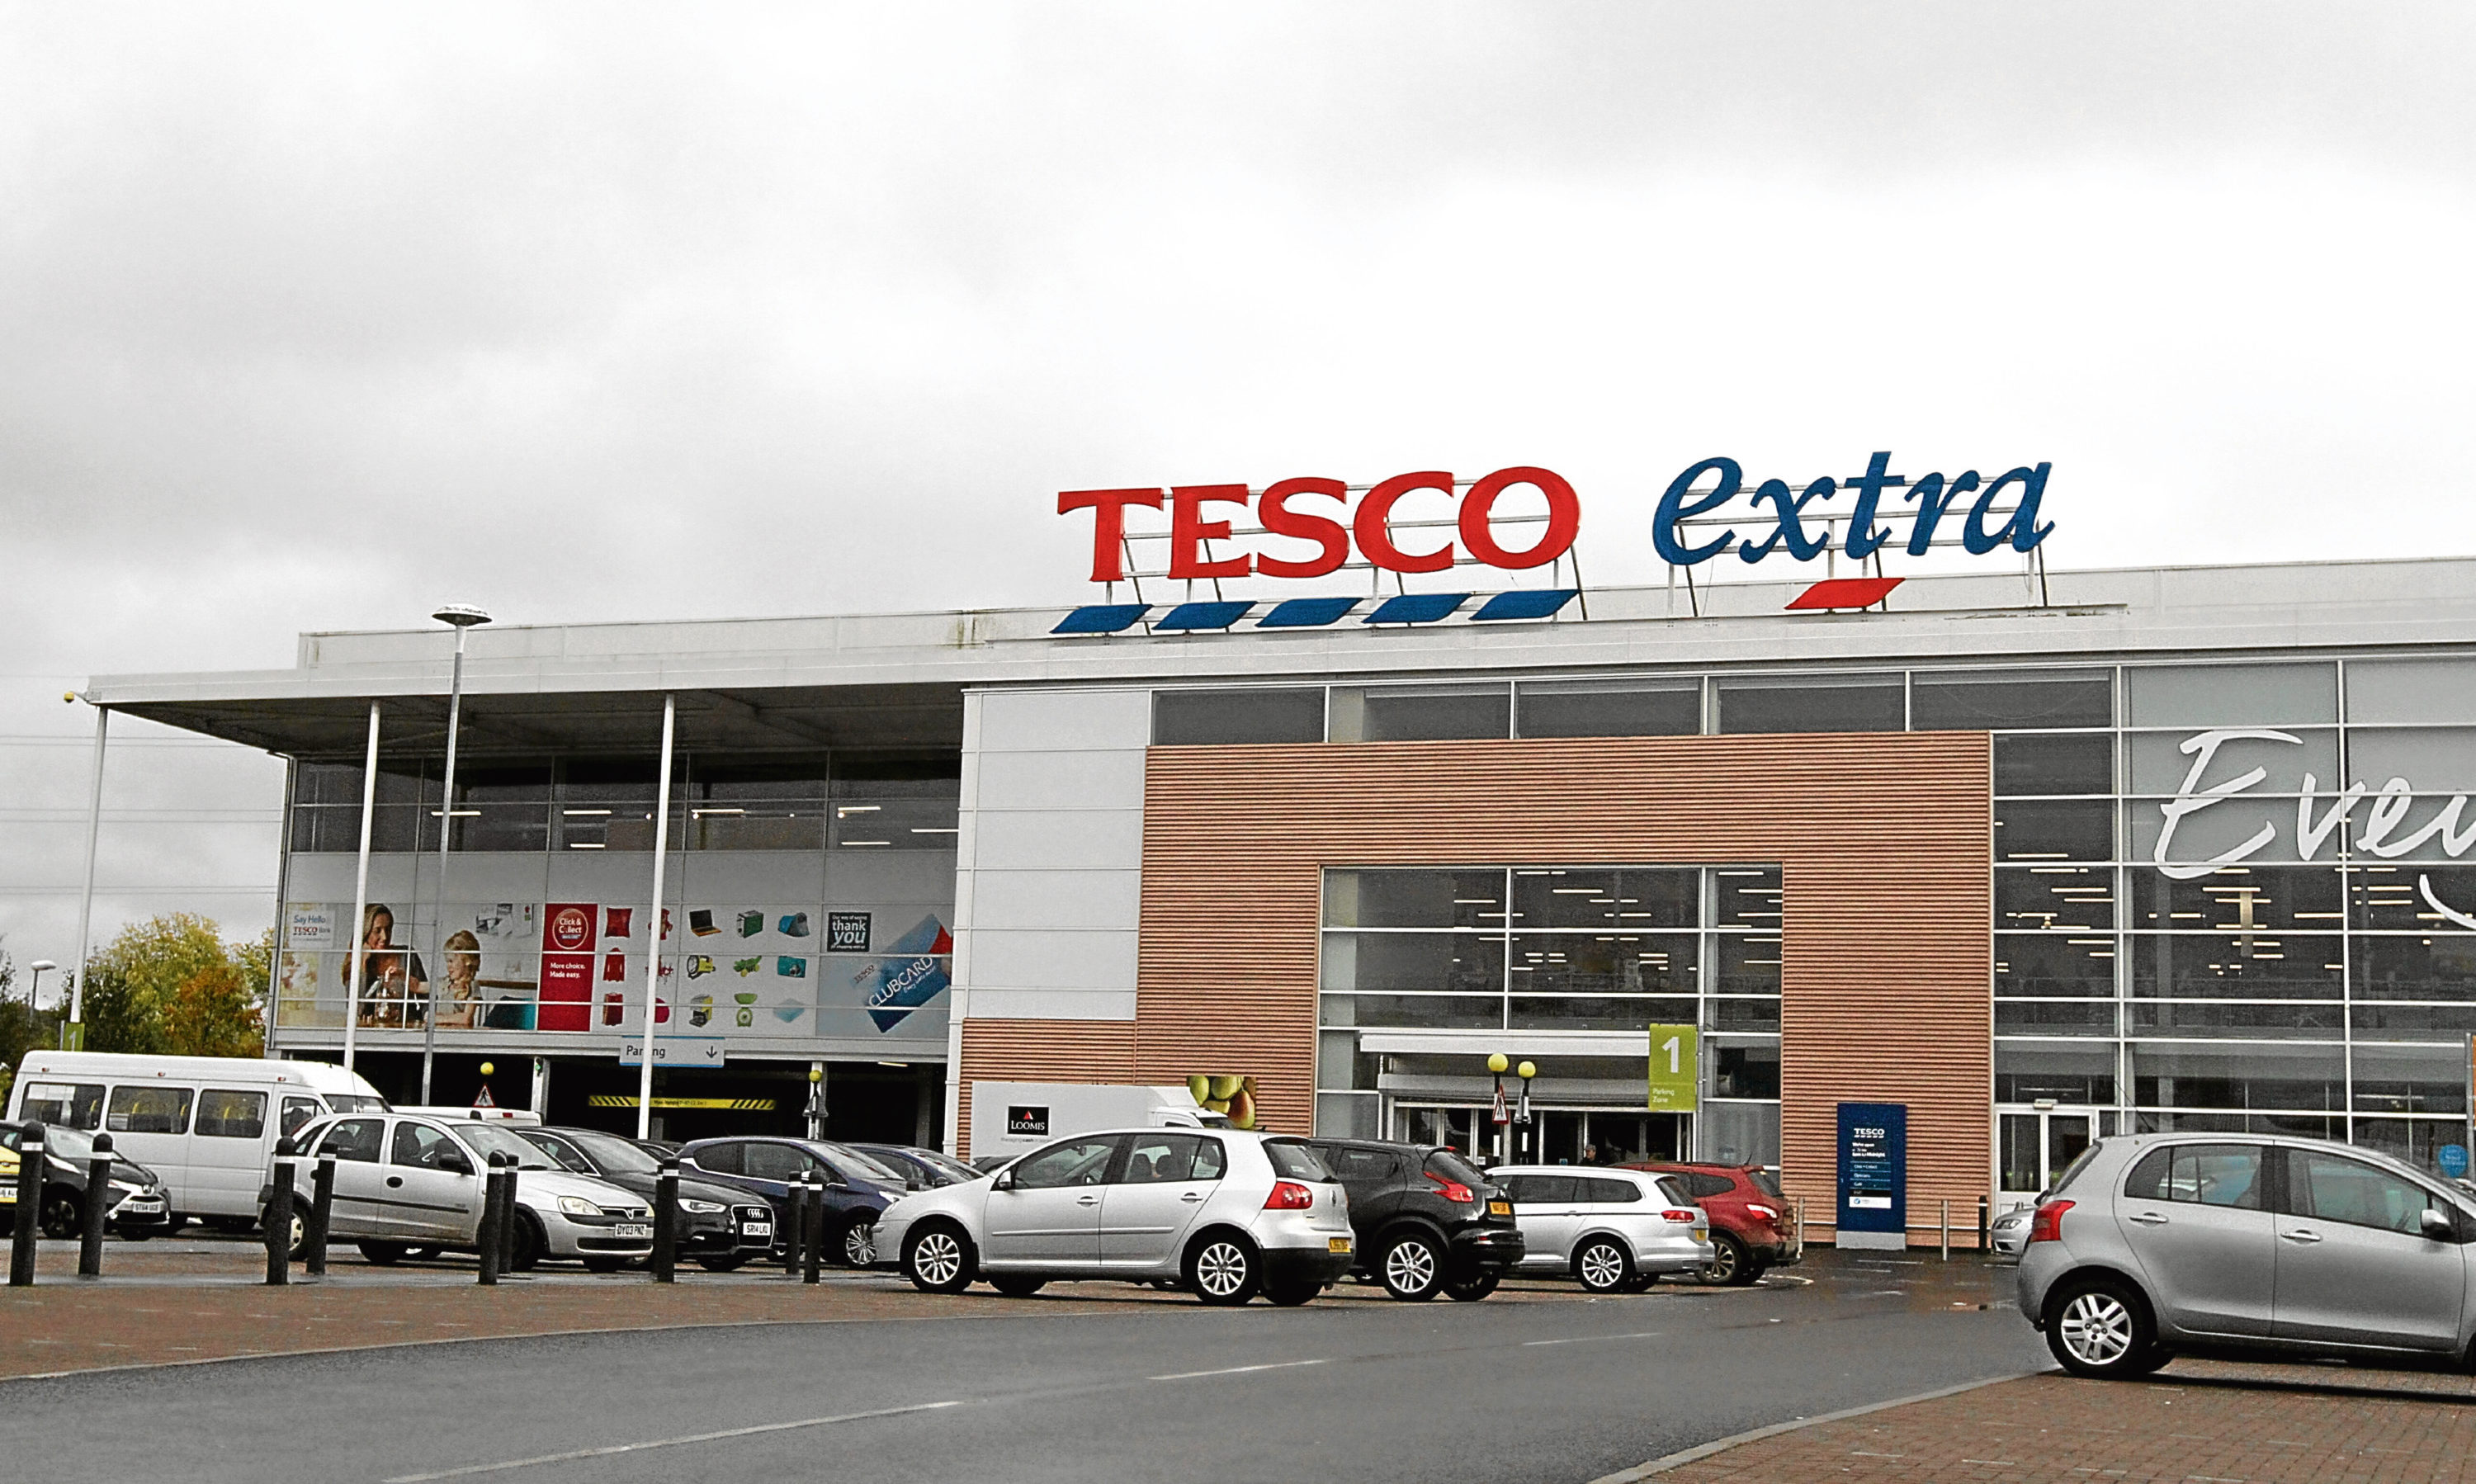 The robbery took place near Tesco in South Road.